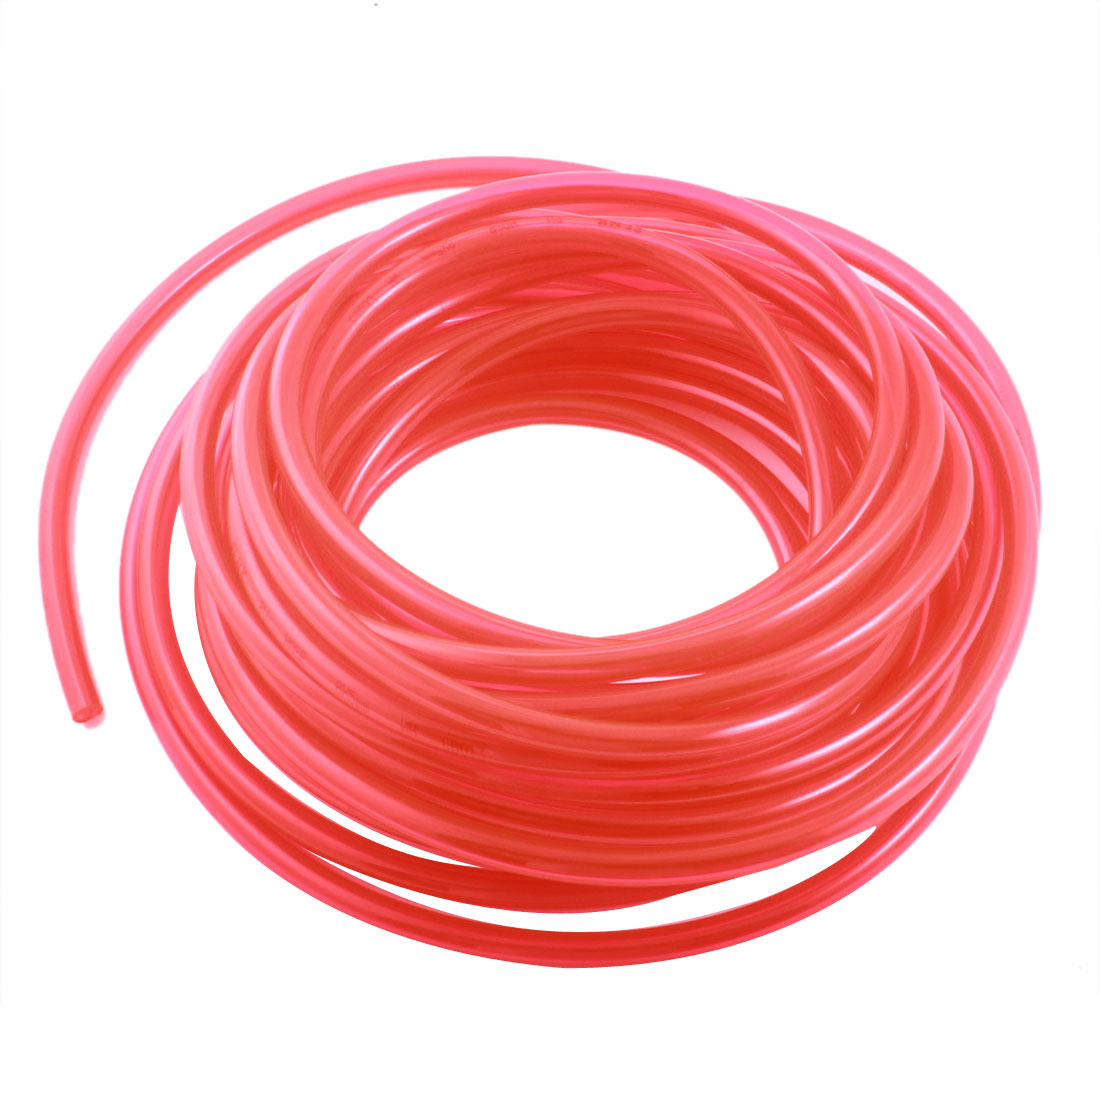 33Ft 5x8mm Air Compressor Fuel Gas Petrol Diesel PU Line Tube Hose Clear Red